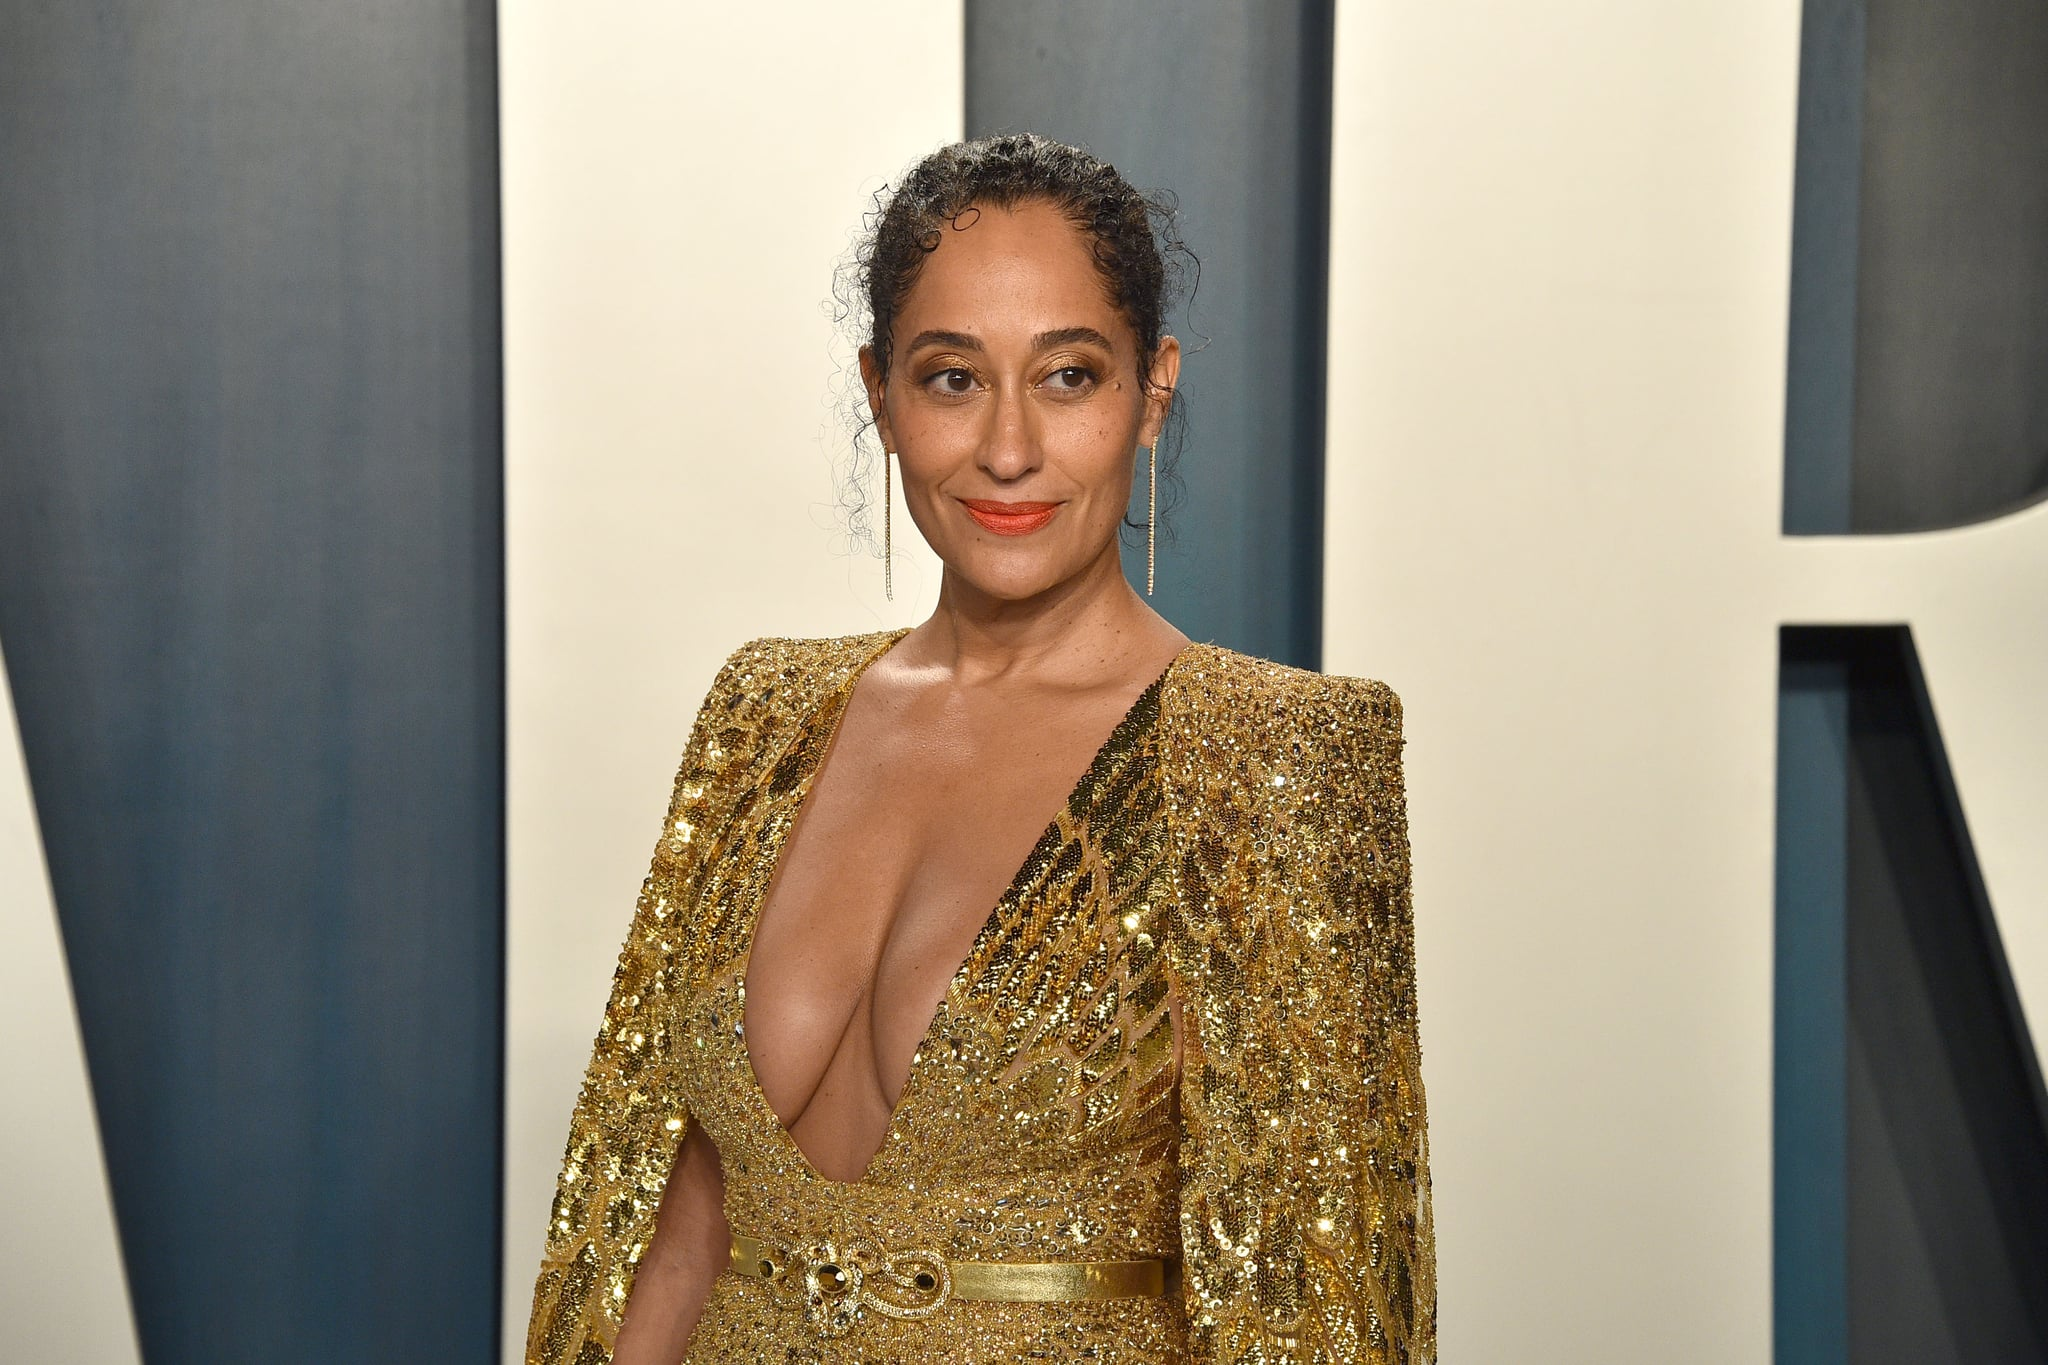 BEVERLY HILLS, CALIFORNIA - FEBRUARY 09: Tracee Ellis Ross attends the 2020 Vanity Fair Oscar Party at Wallis Annenberg Centre for the Performing Arts on February 09, 2020 in Beverly Hills, California. (Photo by David Crotty/Patrick McMullan via Getty Images)